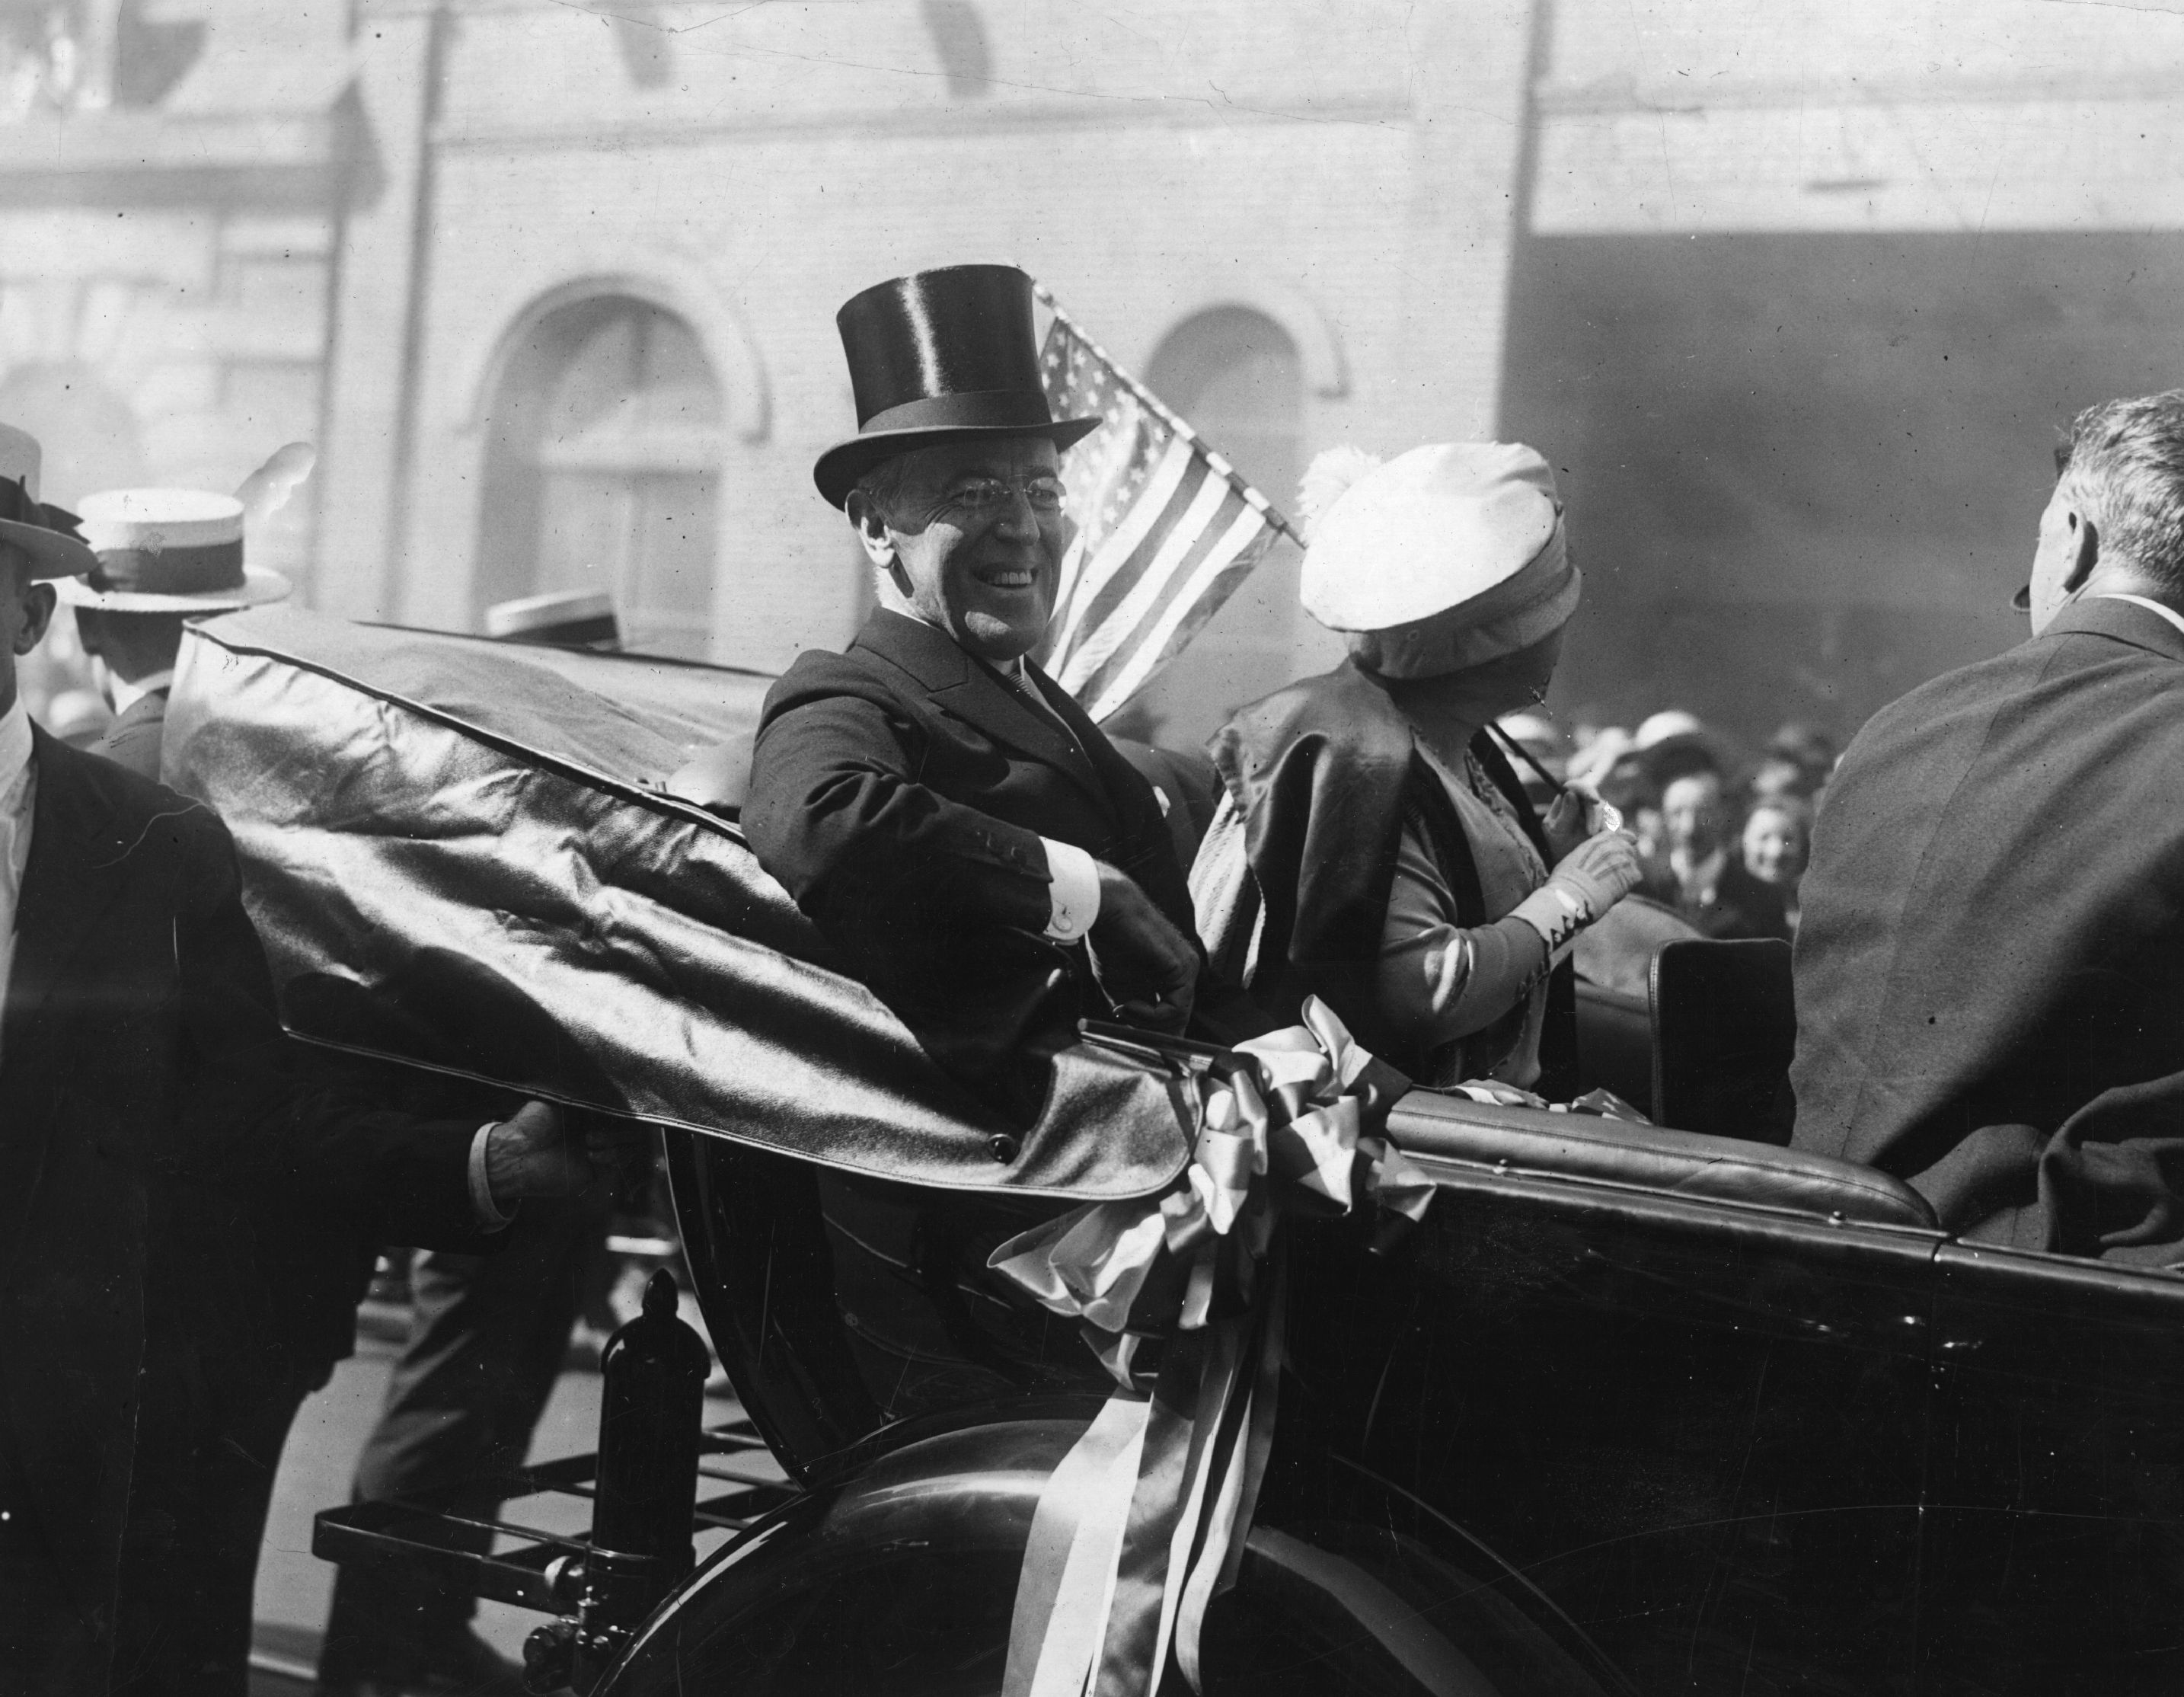 President Woodrow Wilson with the First Lady, Edith Wilson, riding in a carriage in New York.